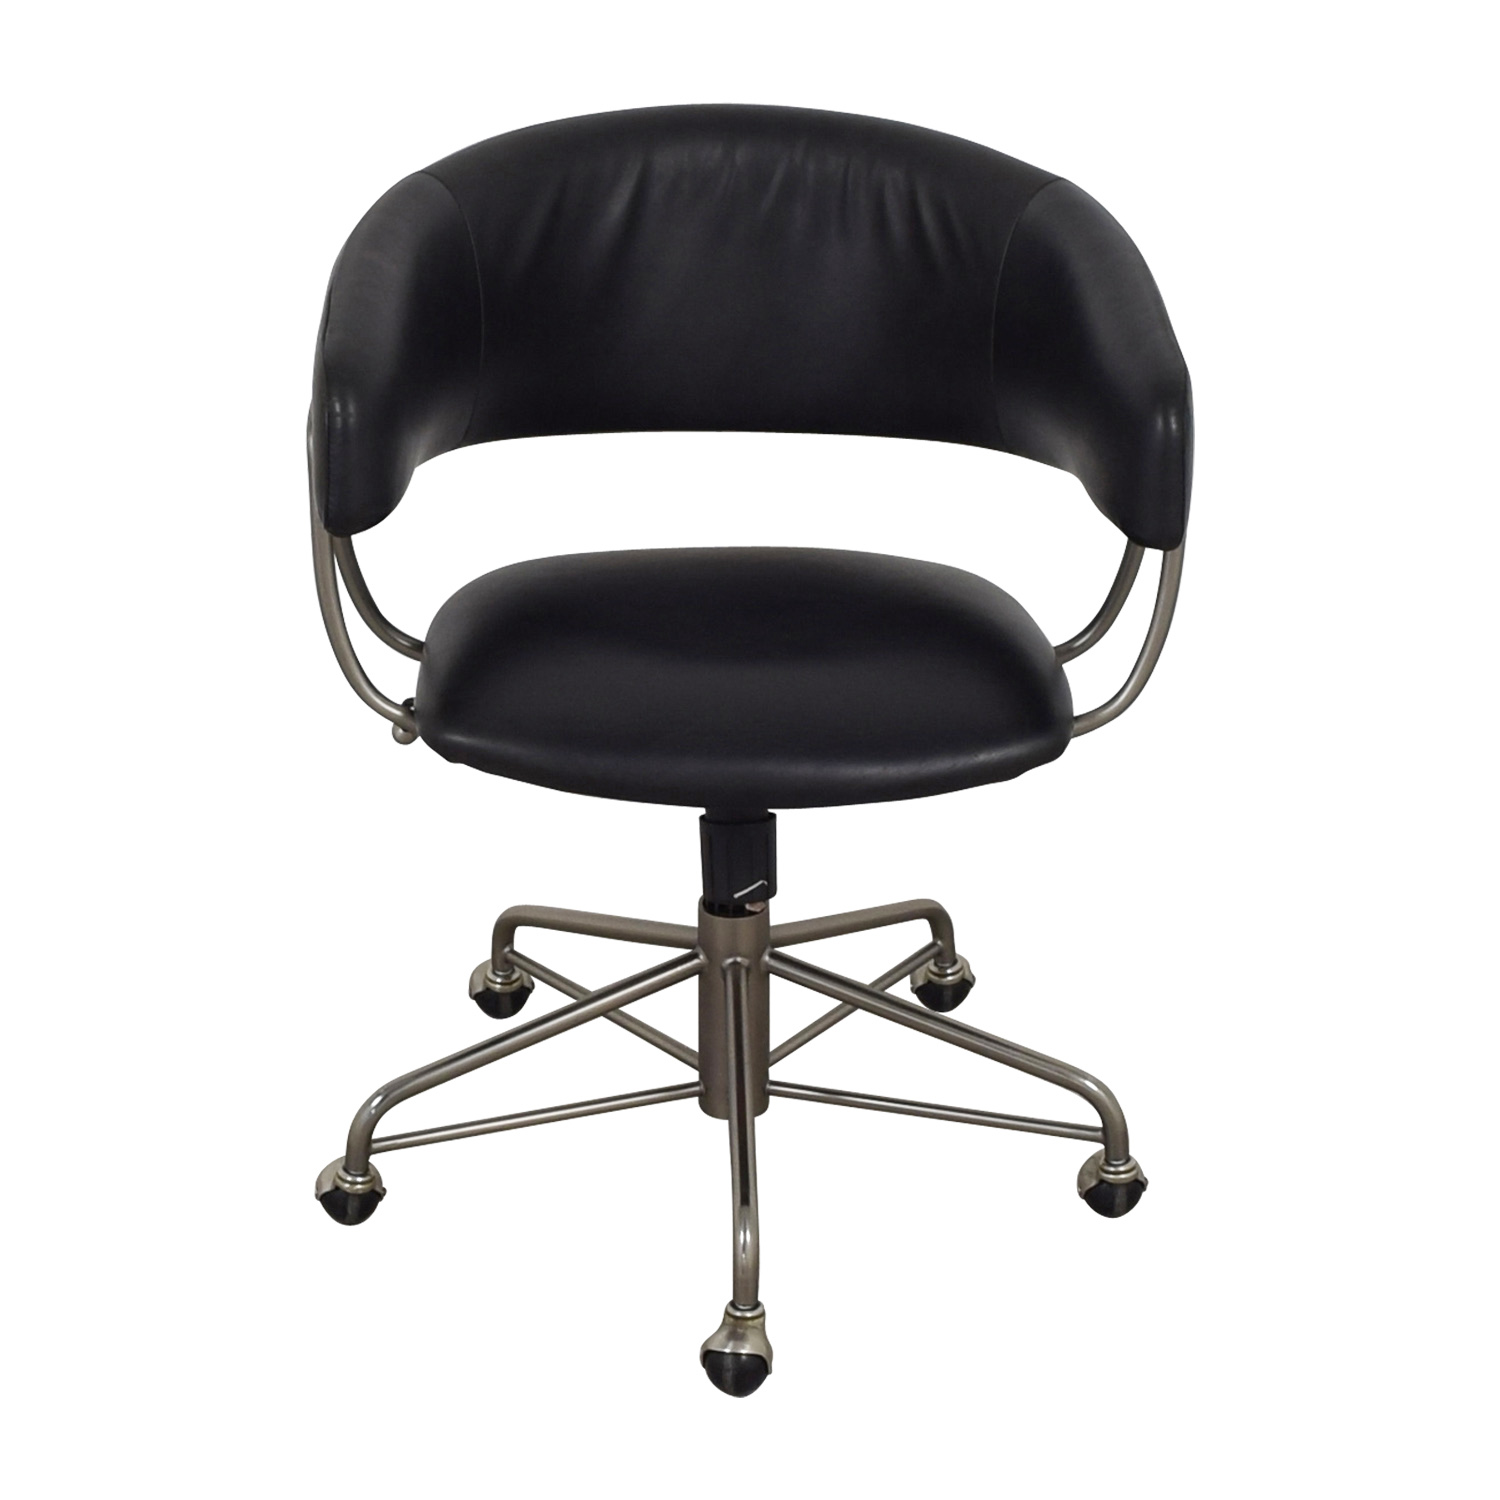 73 Off West Elm West Elm Halifax Black Leather Office Chair Chairs